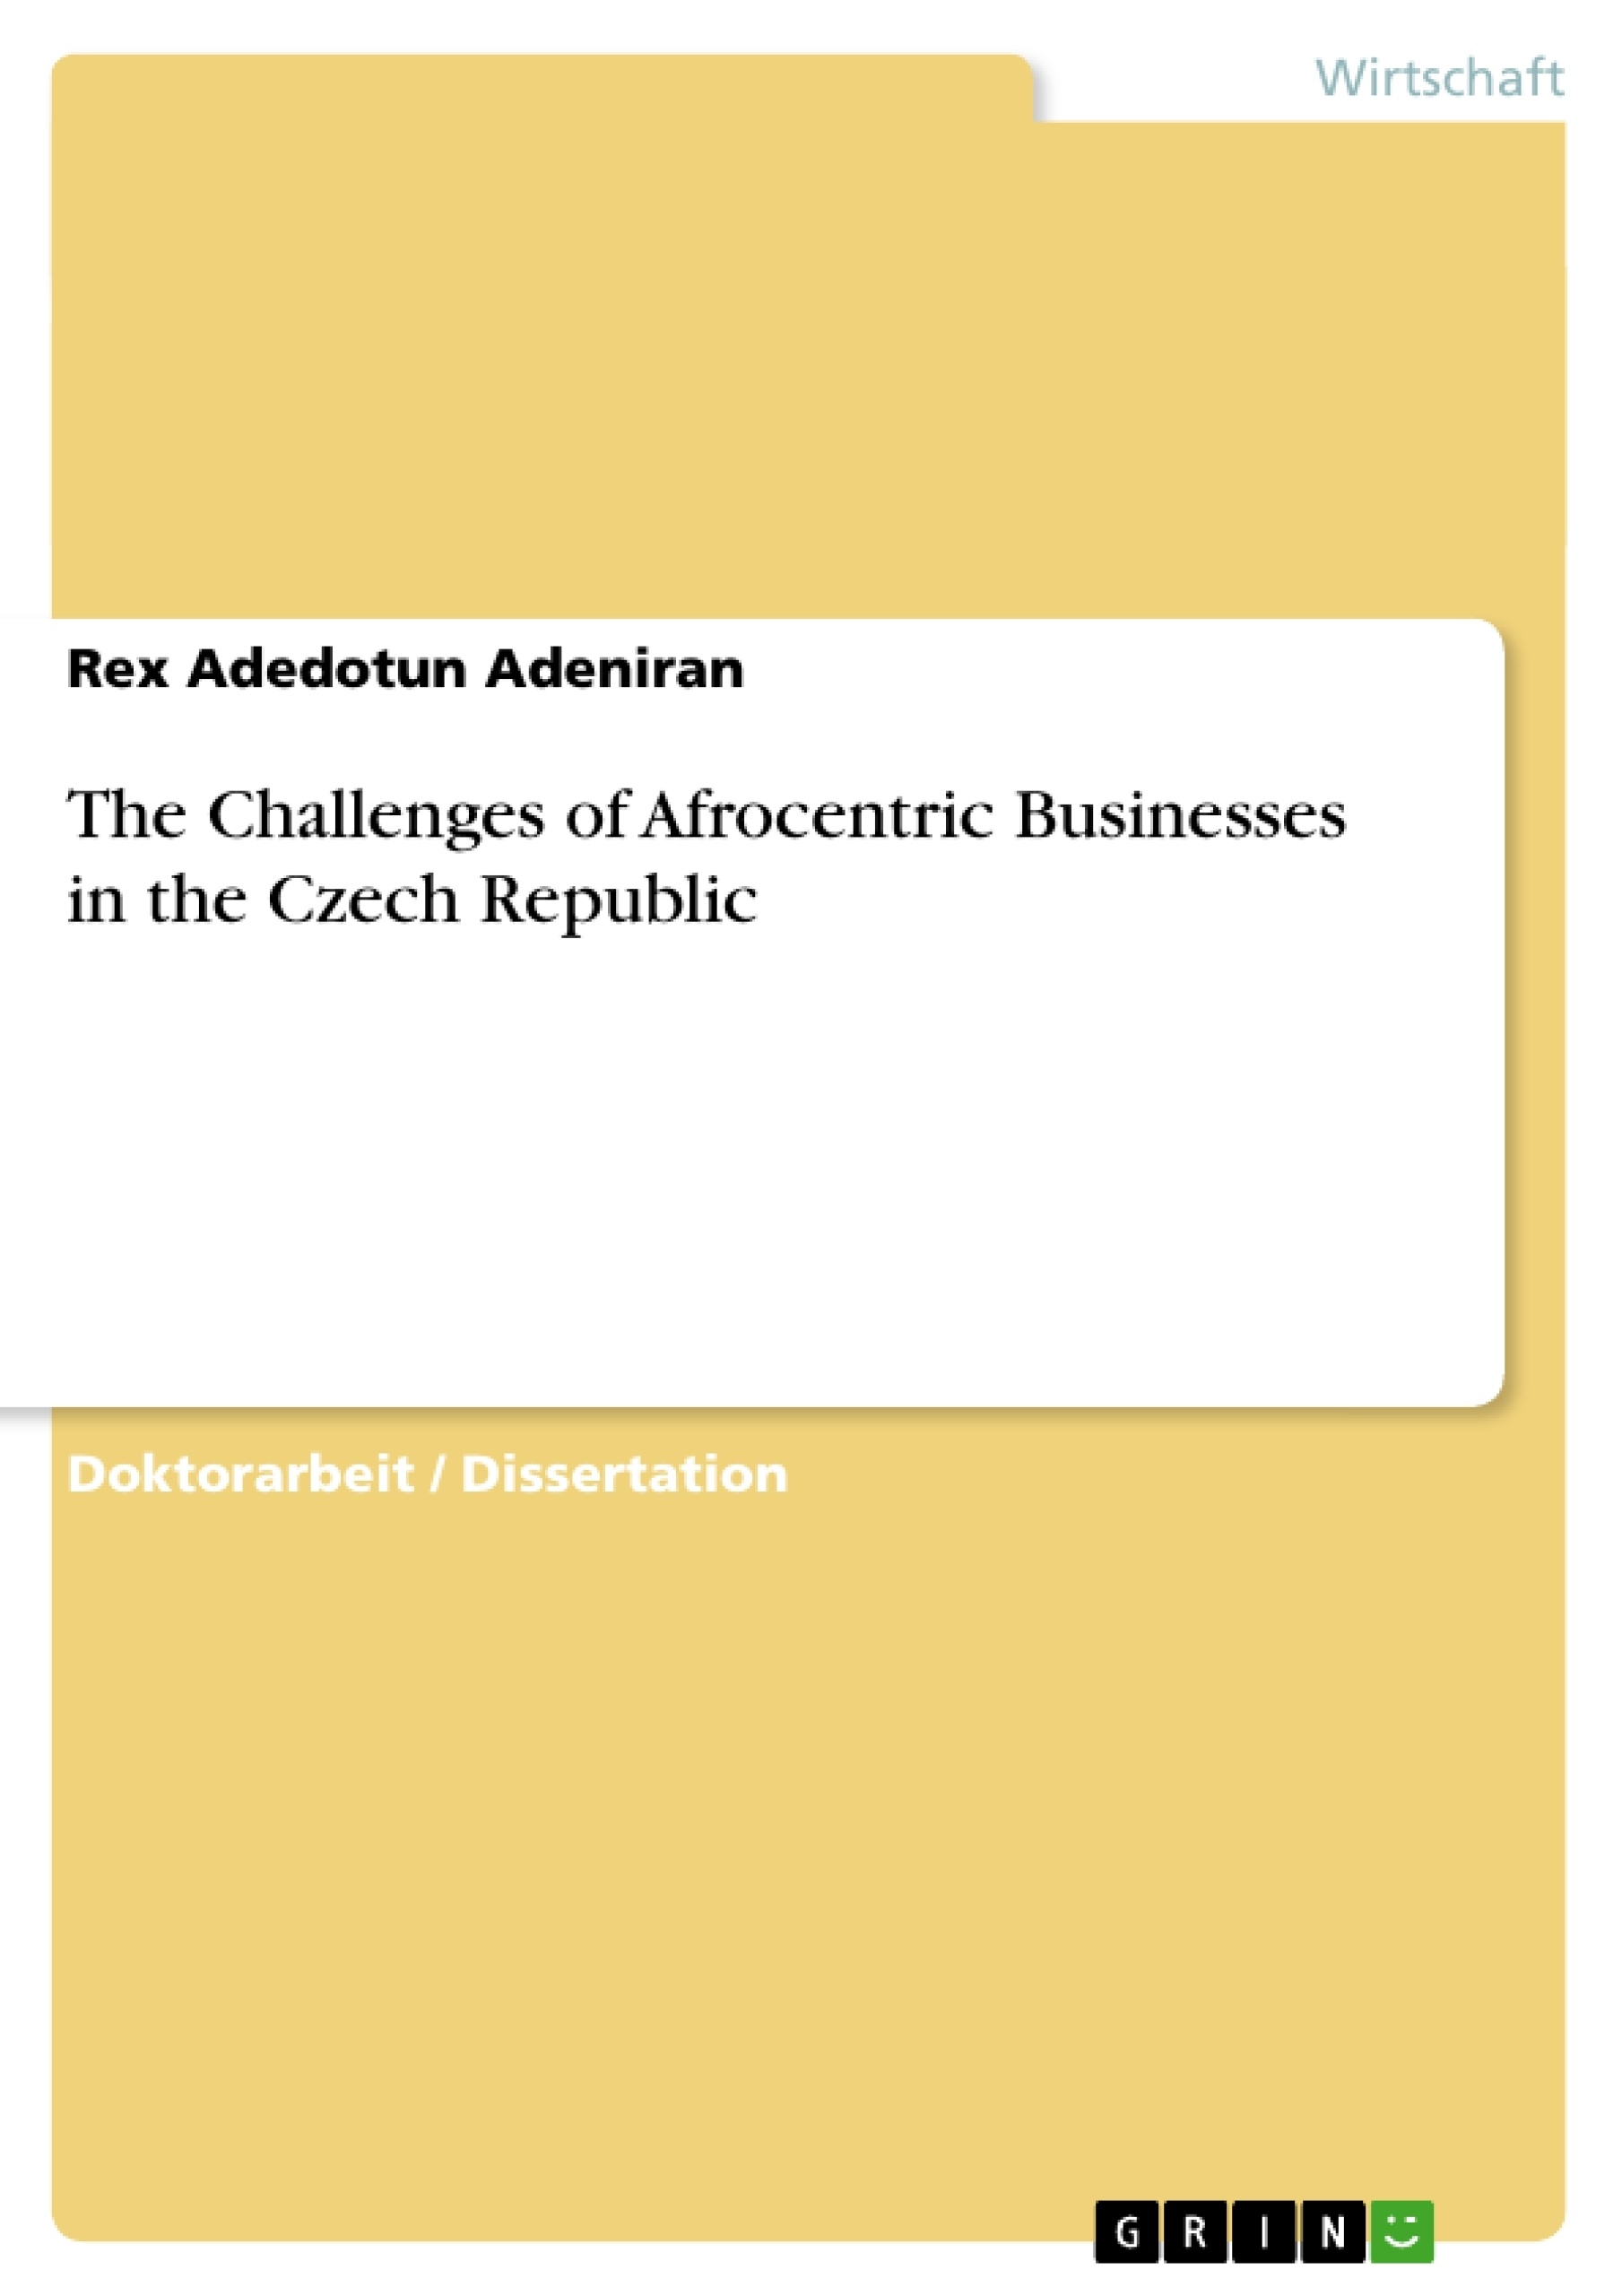 Titel: The Challenges of Afrocentric Businesses in the Czech Republic